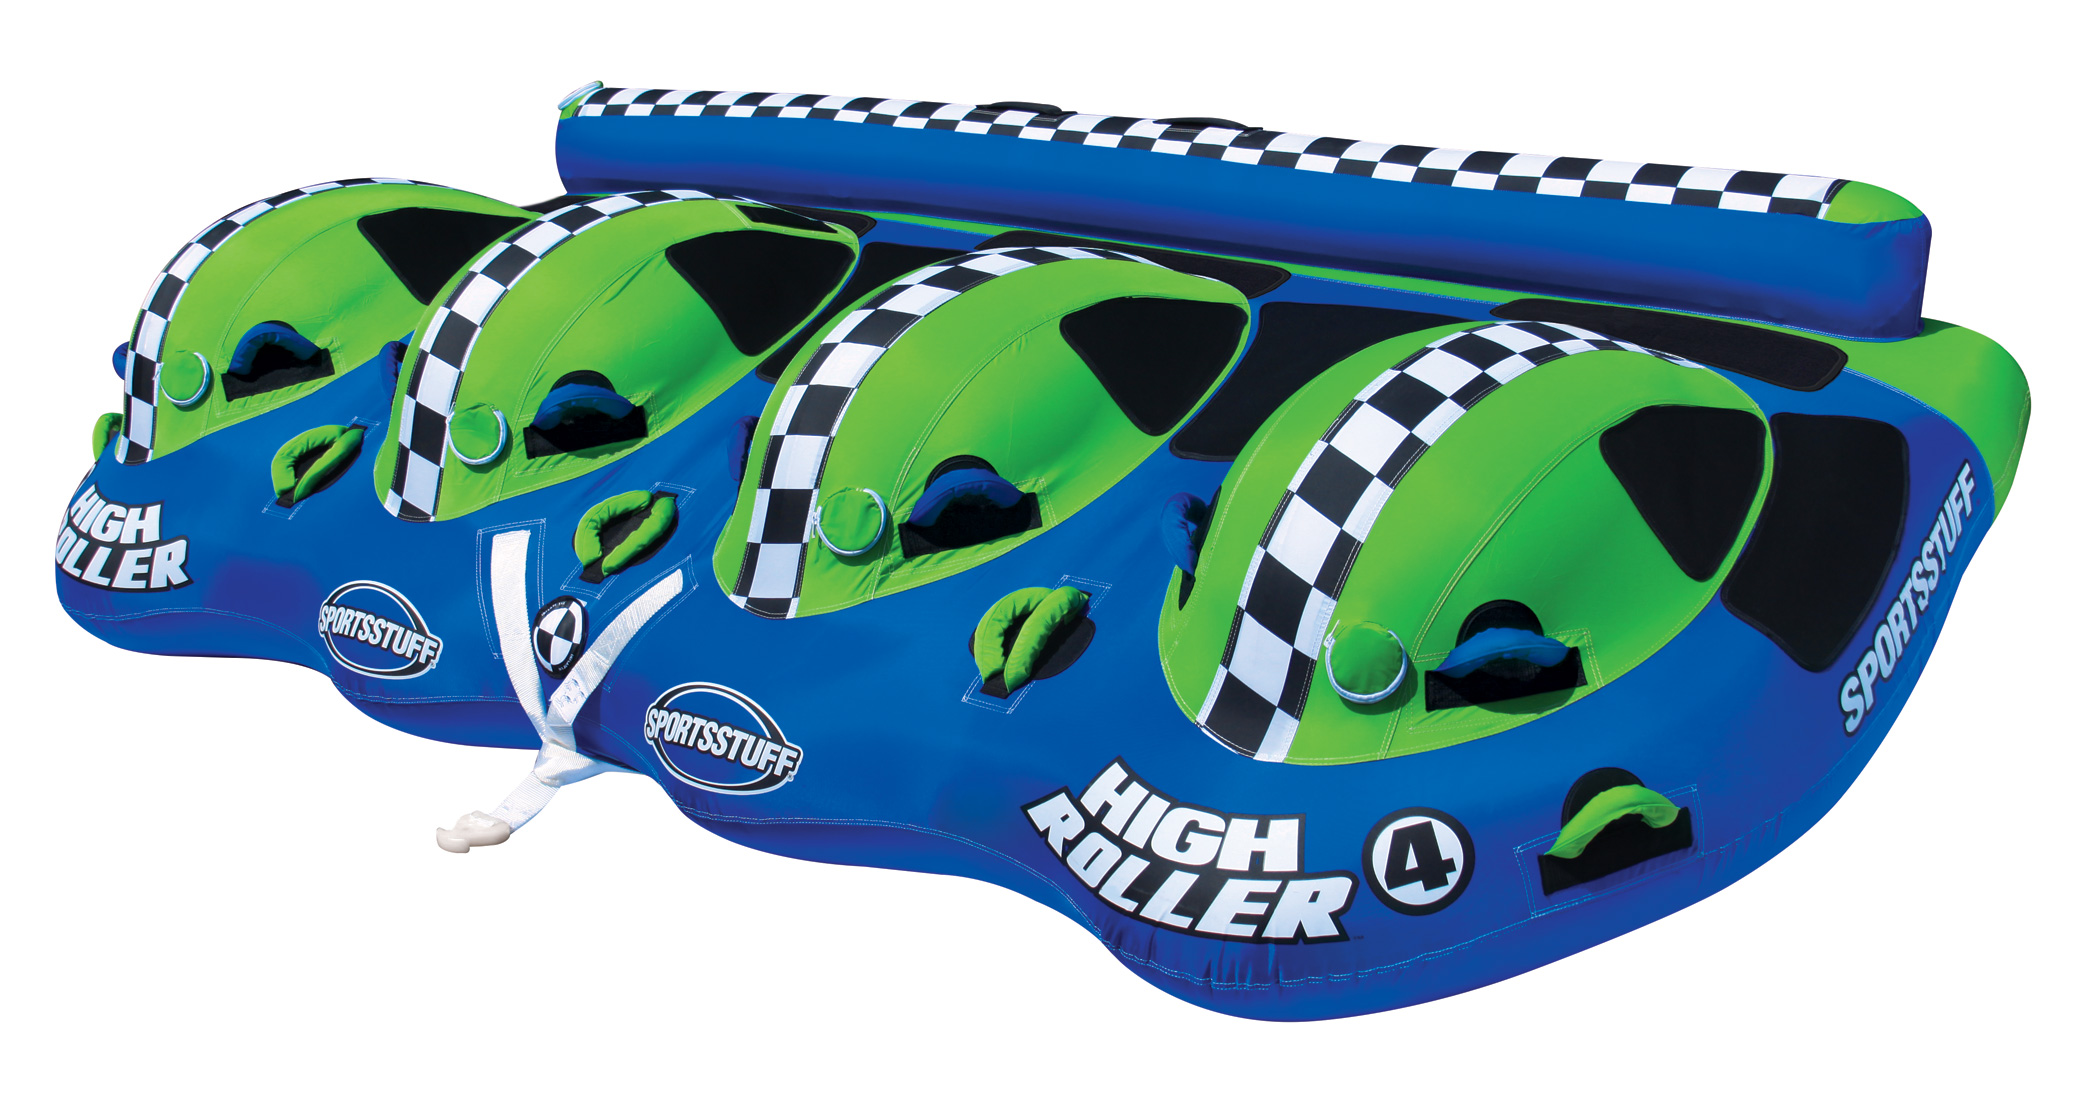 High Roller 4 Rider Towable by AIRHEAD SPORTS GROUP